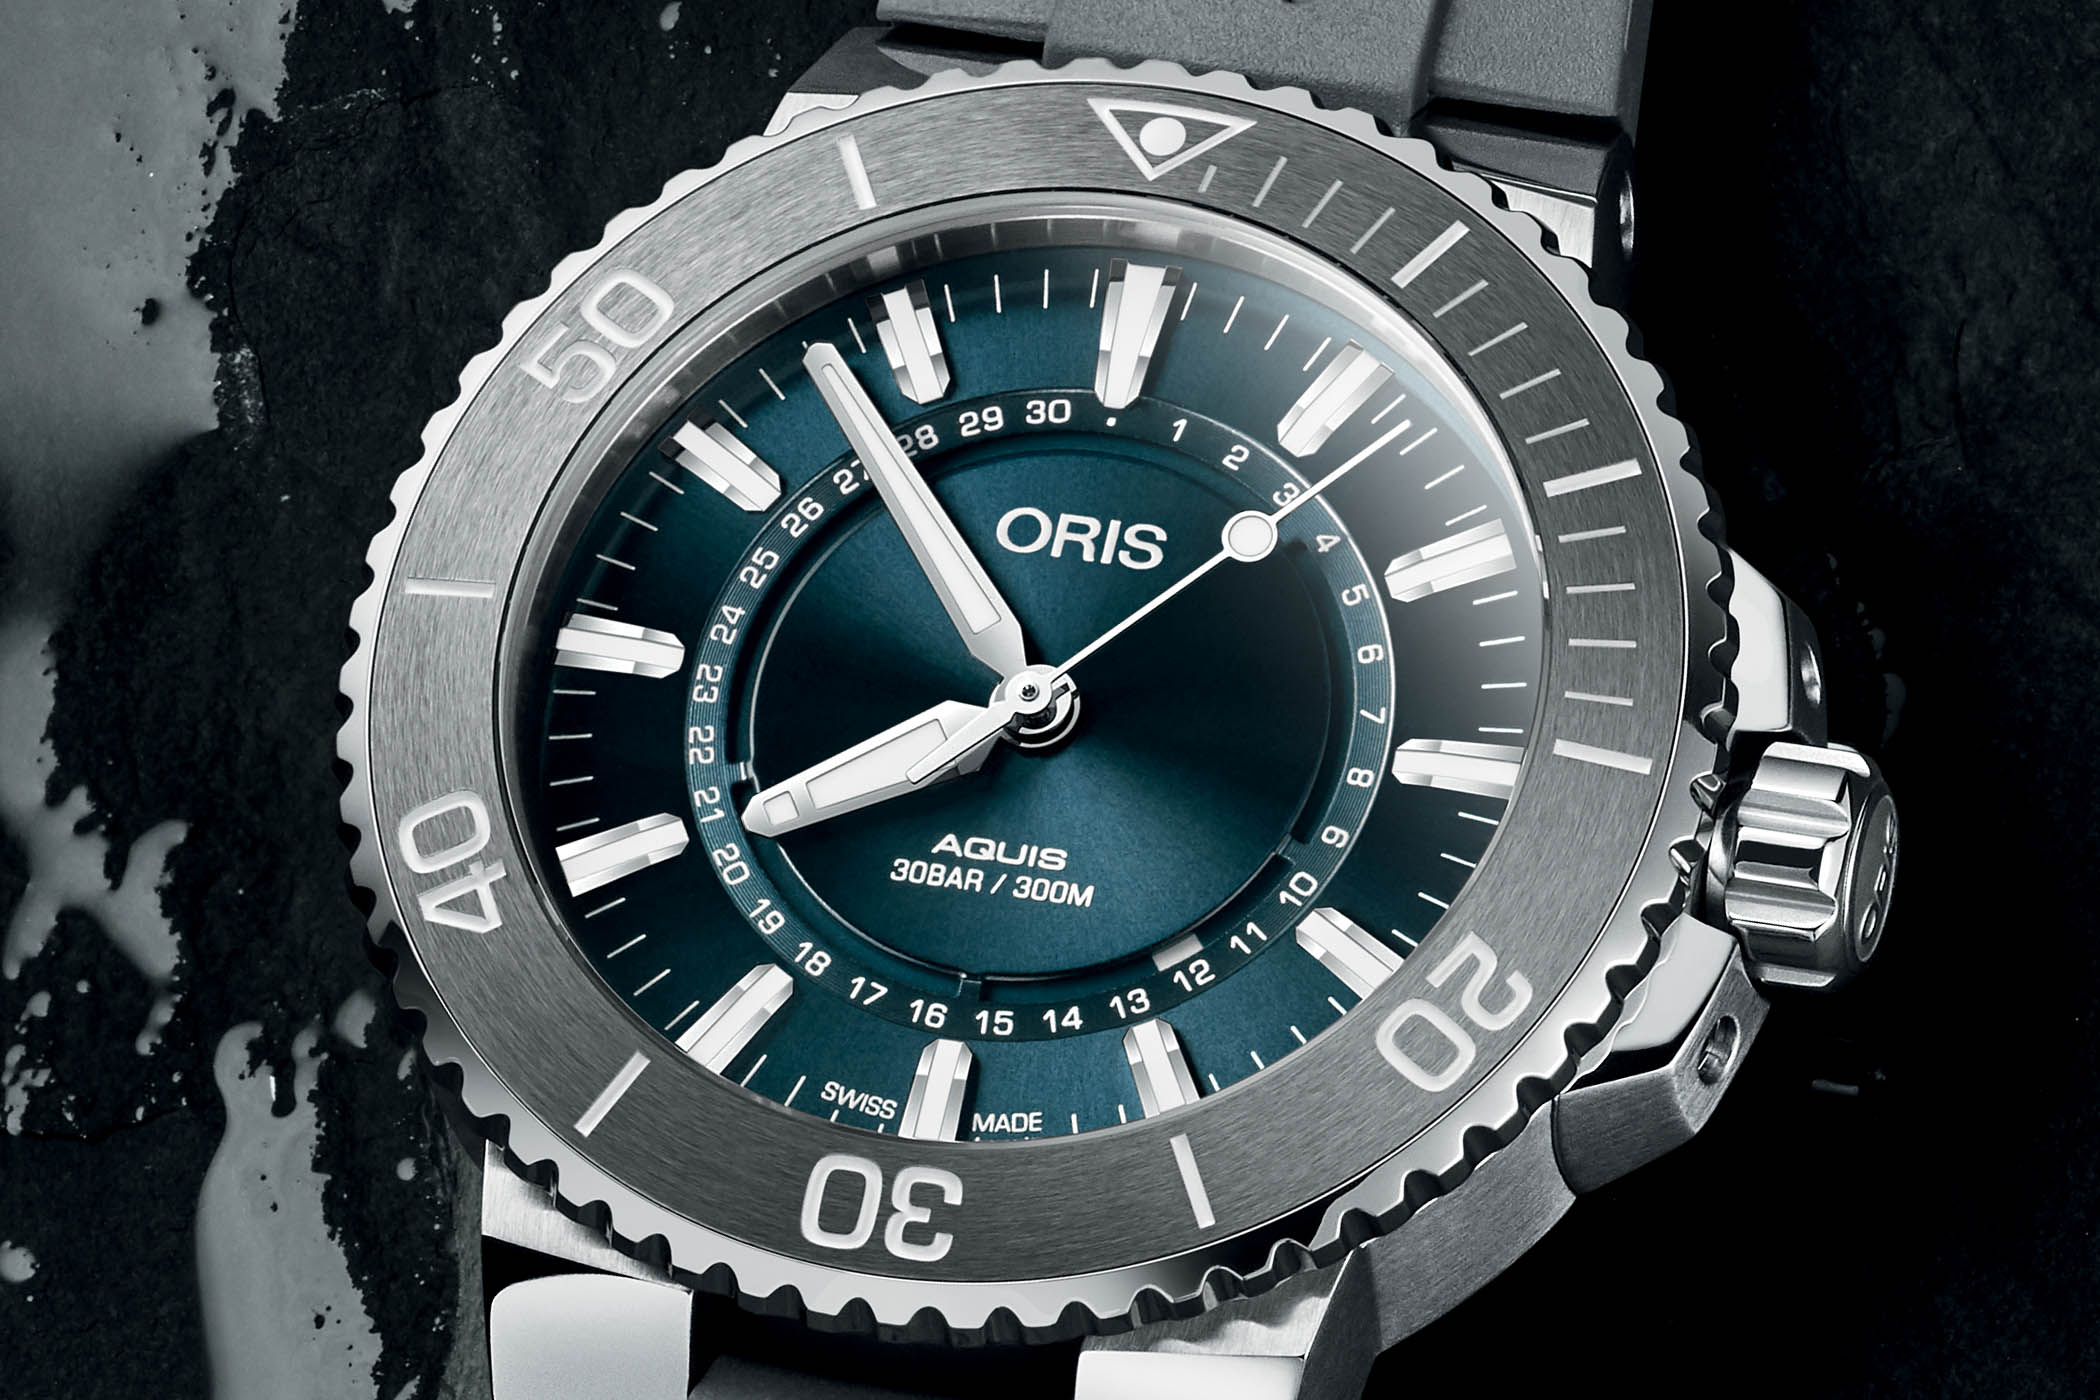 Oris Source of Life Limited Edition Aquis Circular Date